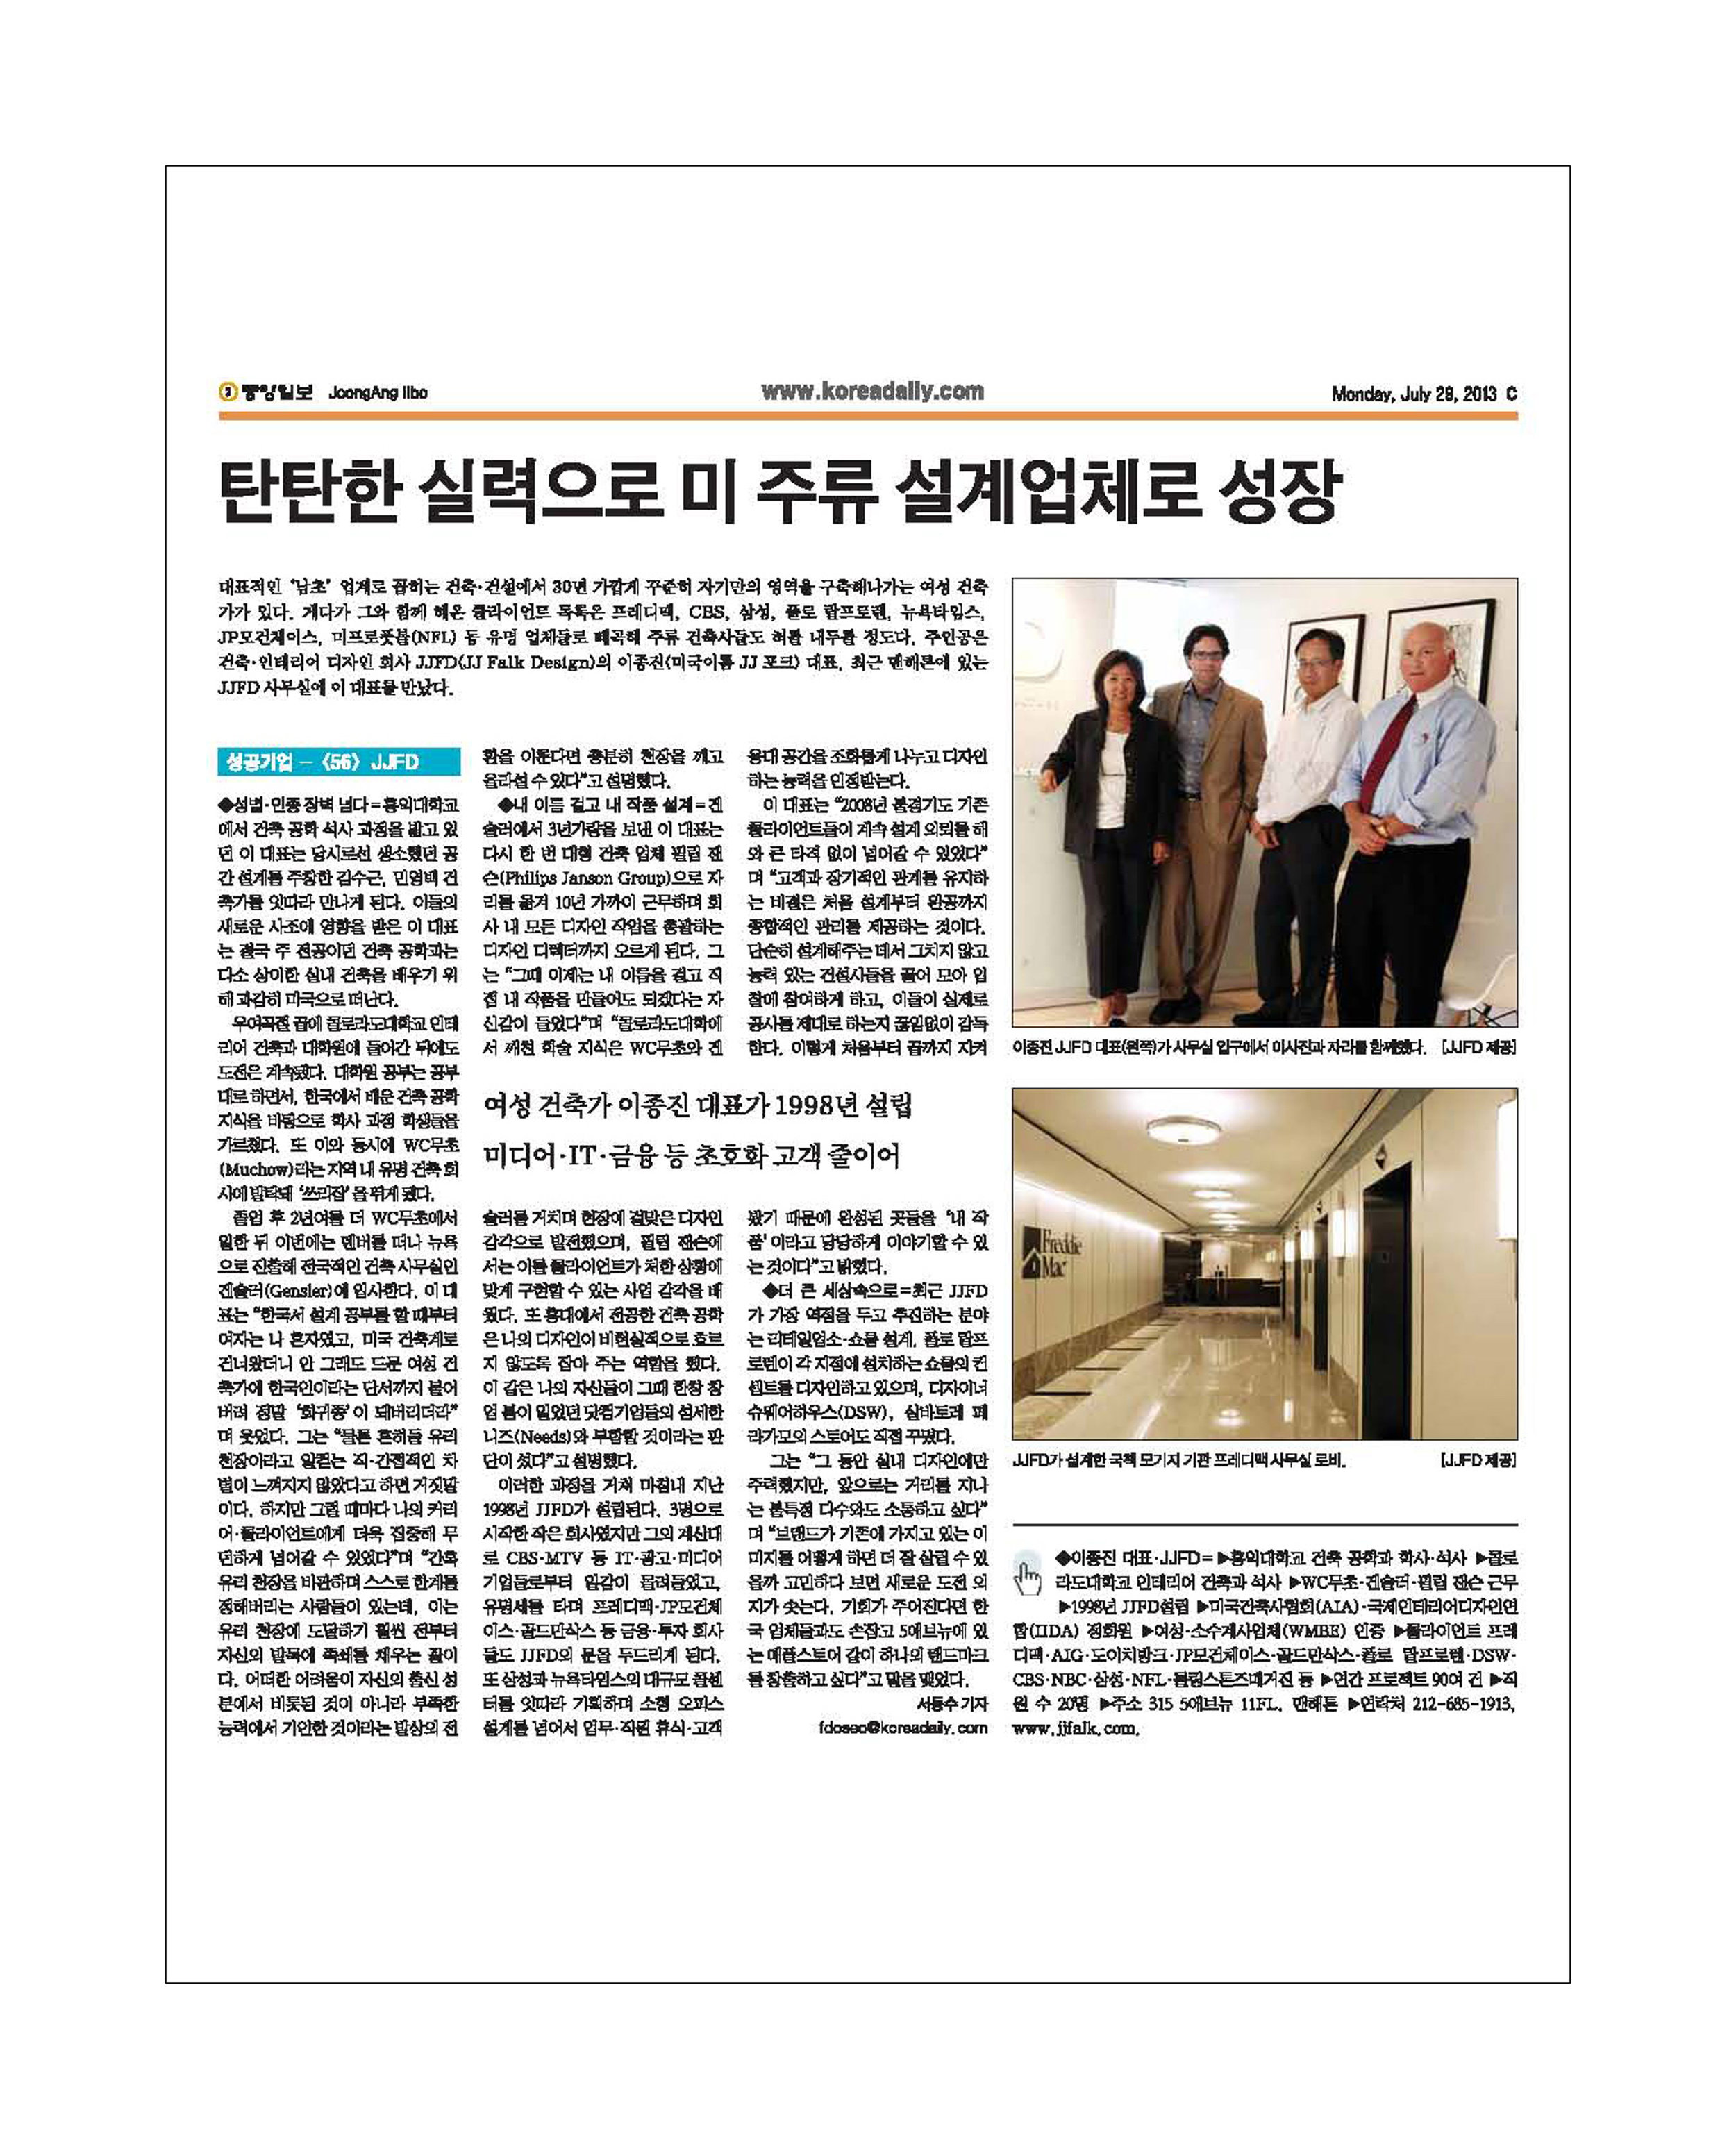 2013 Korea Daily